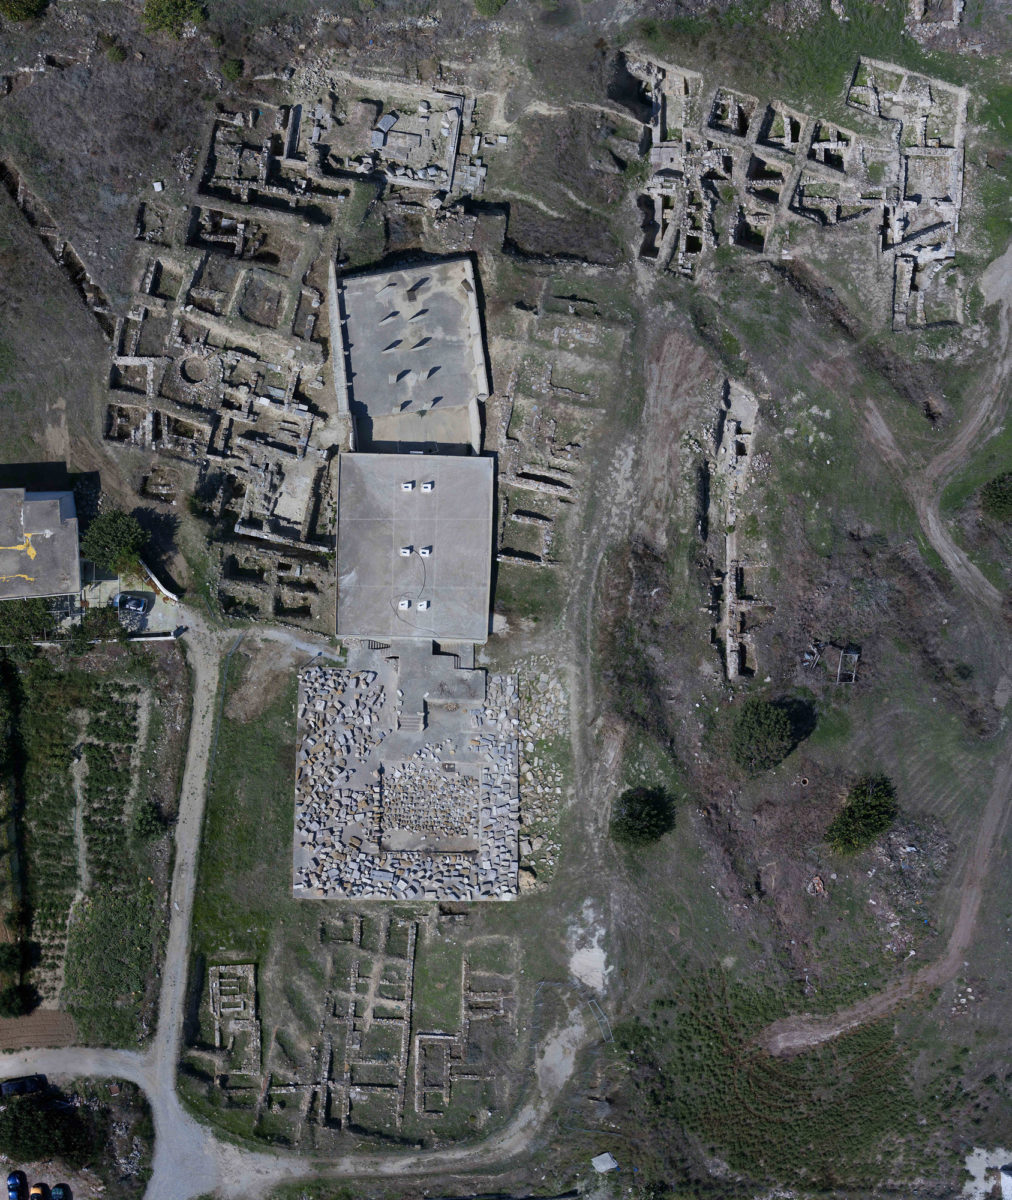 Aerial photograph of the excavation at ancient Alasarna conducted by Athens University.